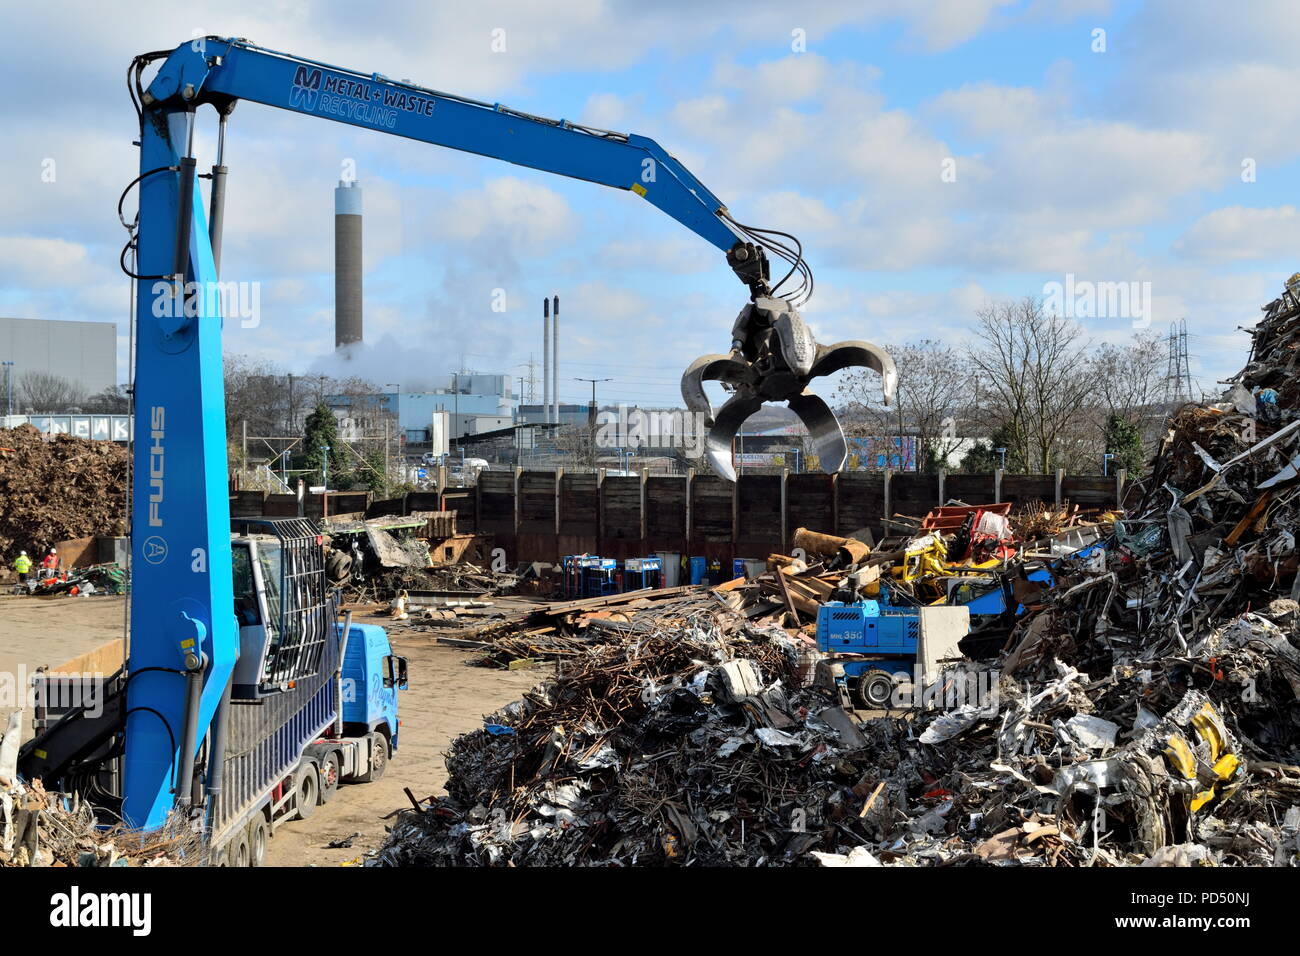 Excavating machine with large grapple claw on the scrap metal recycling site in Edmonton industrial estate, London. - Stock Image